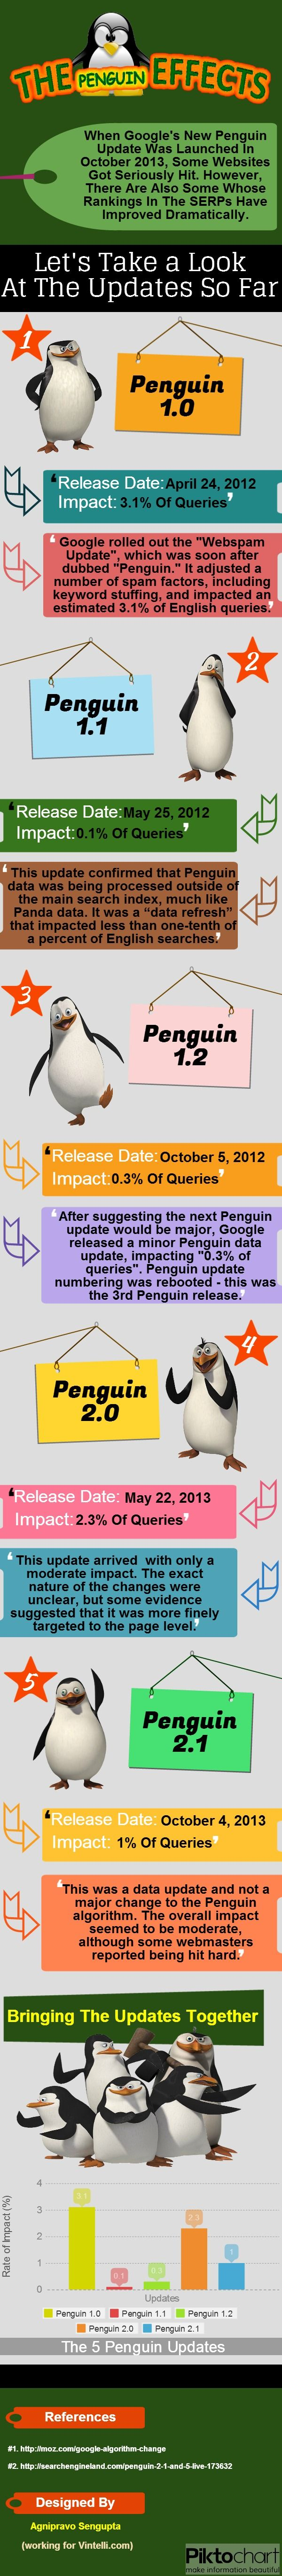 Google Penguin: Its Impact Over Time [Infographic]